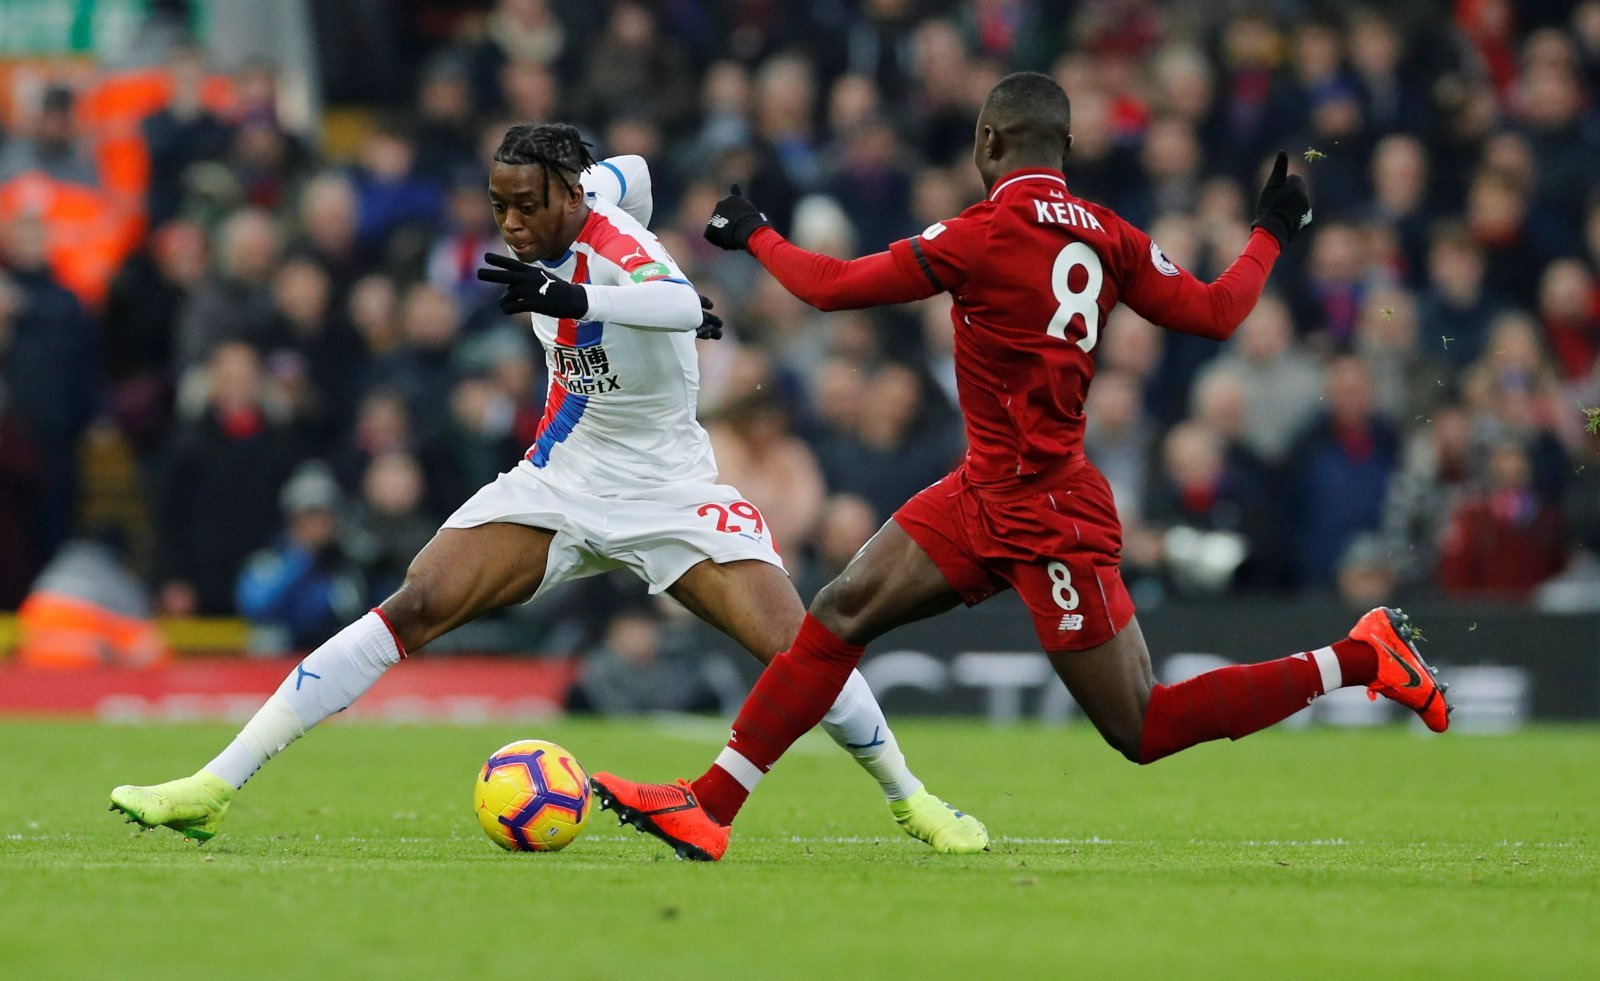 Naby Keita is a problem Liverpool need to fix as soon as possible